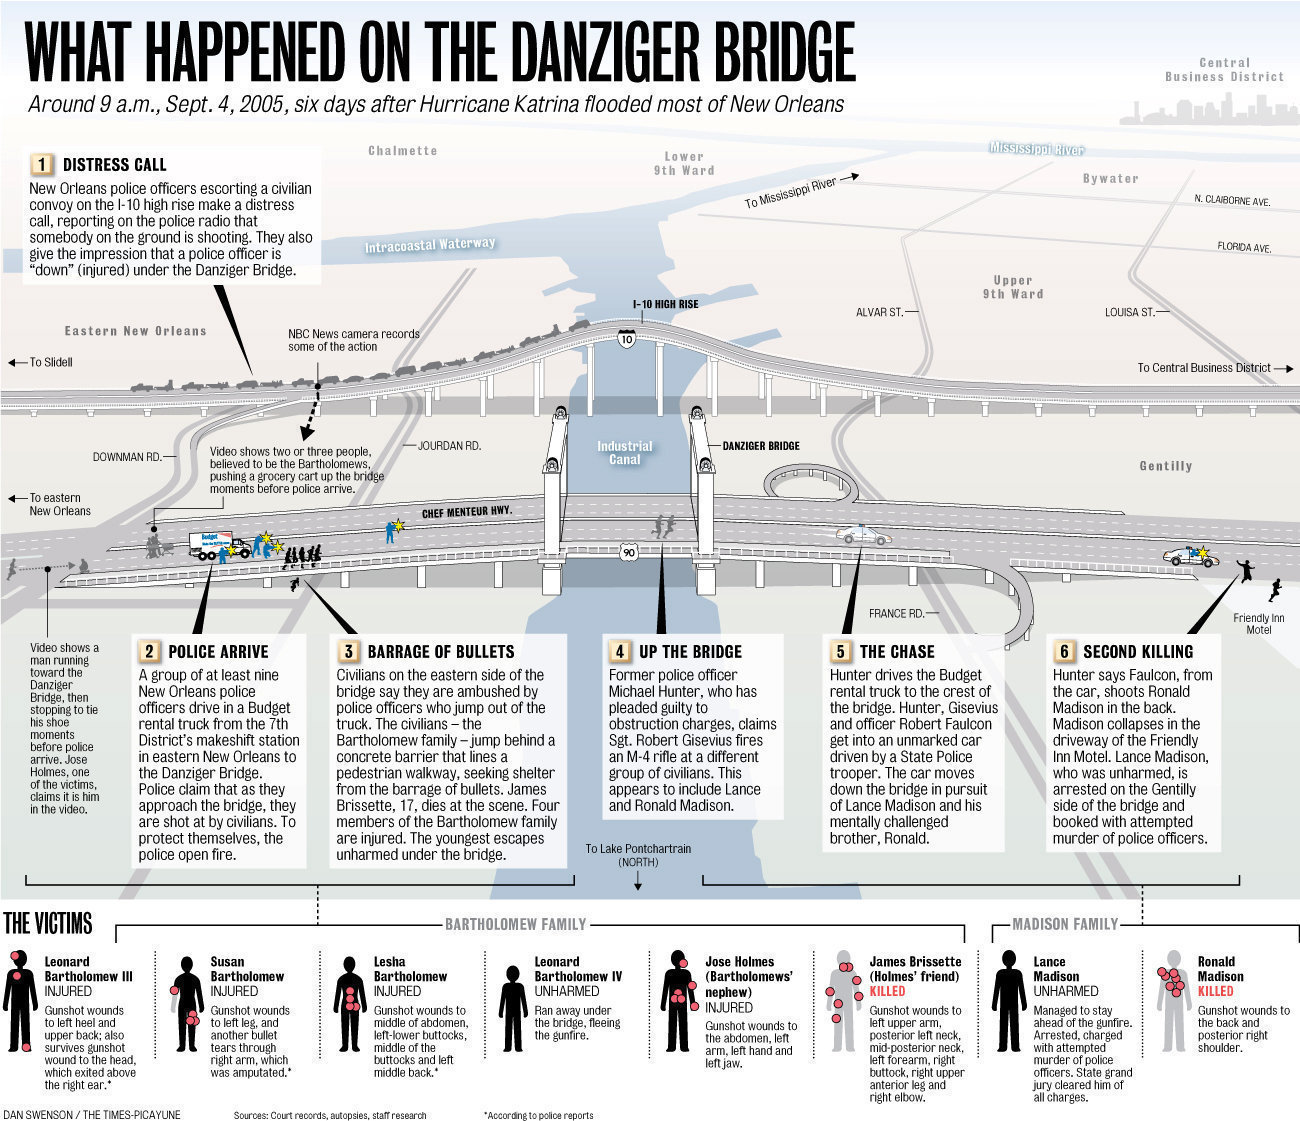 (Graphic: New Orleans Times-Picayune)